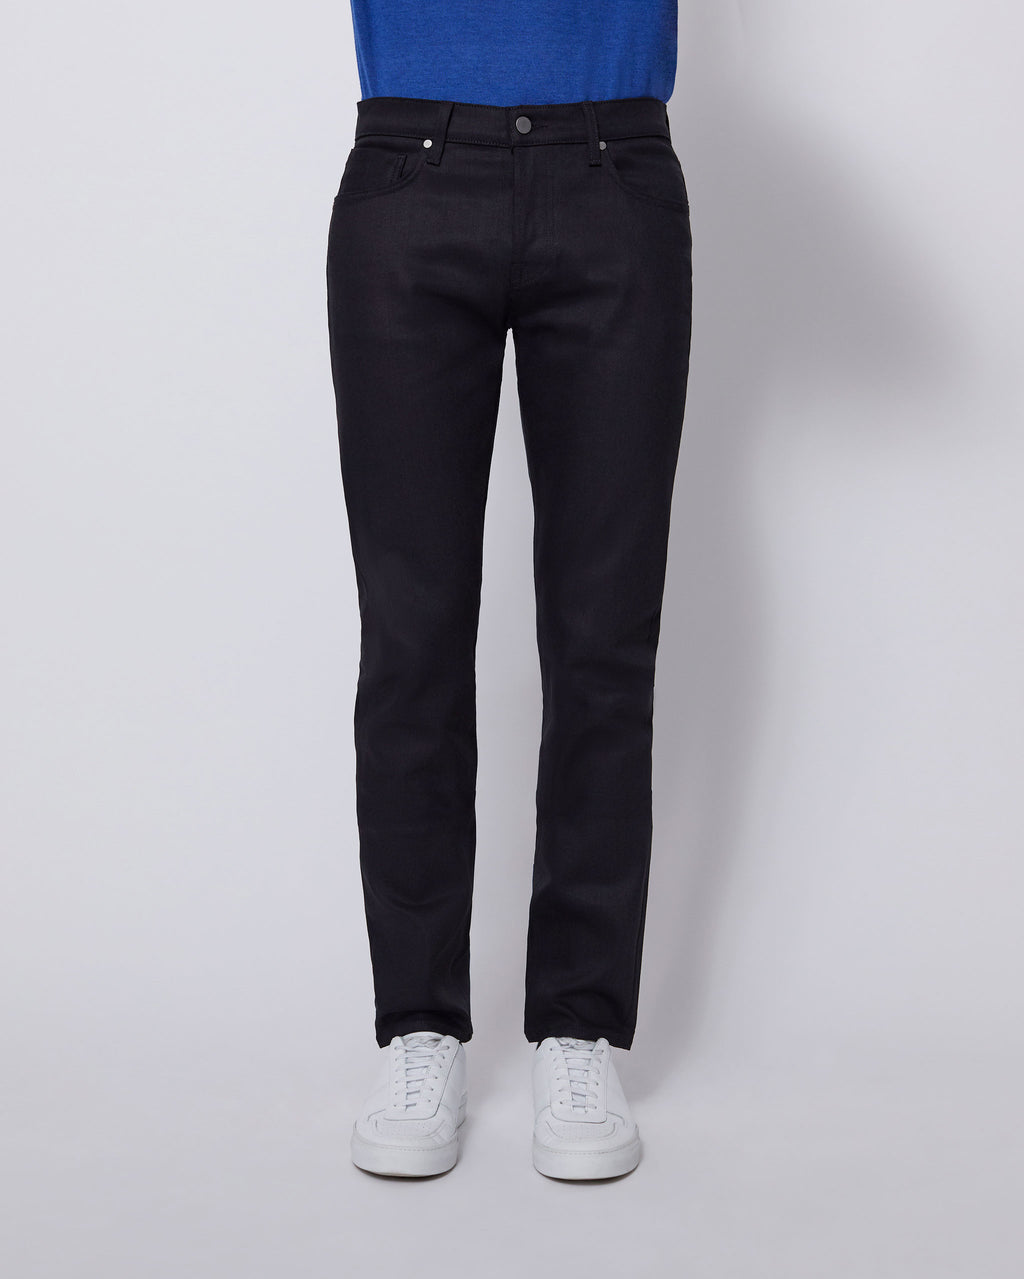 The Modern Slim Jean in Black Stretch Selvedge